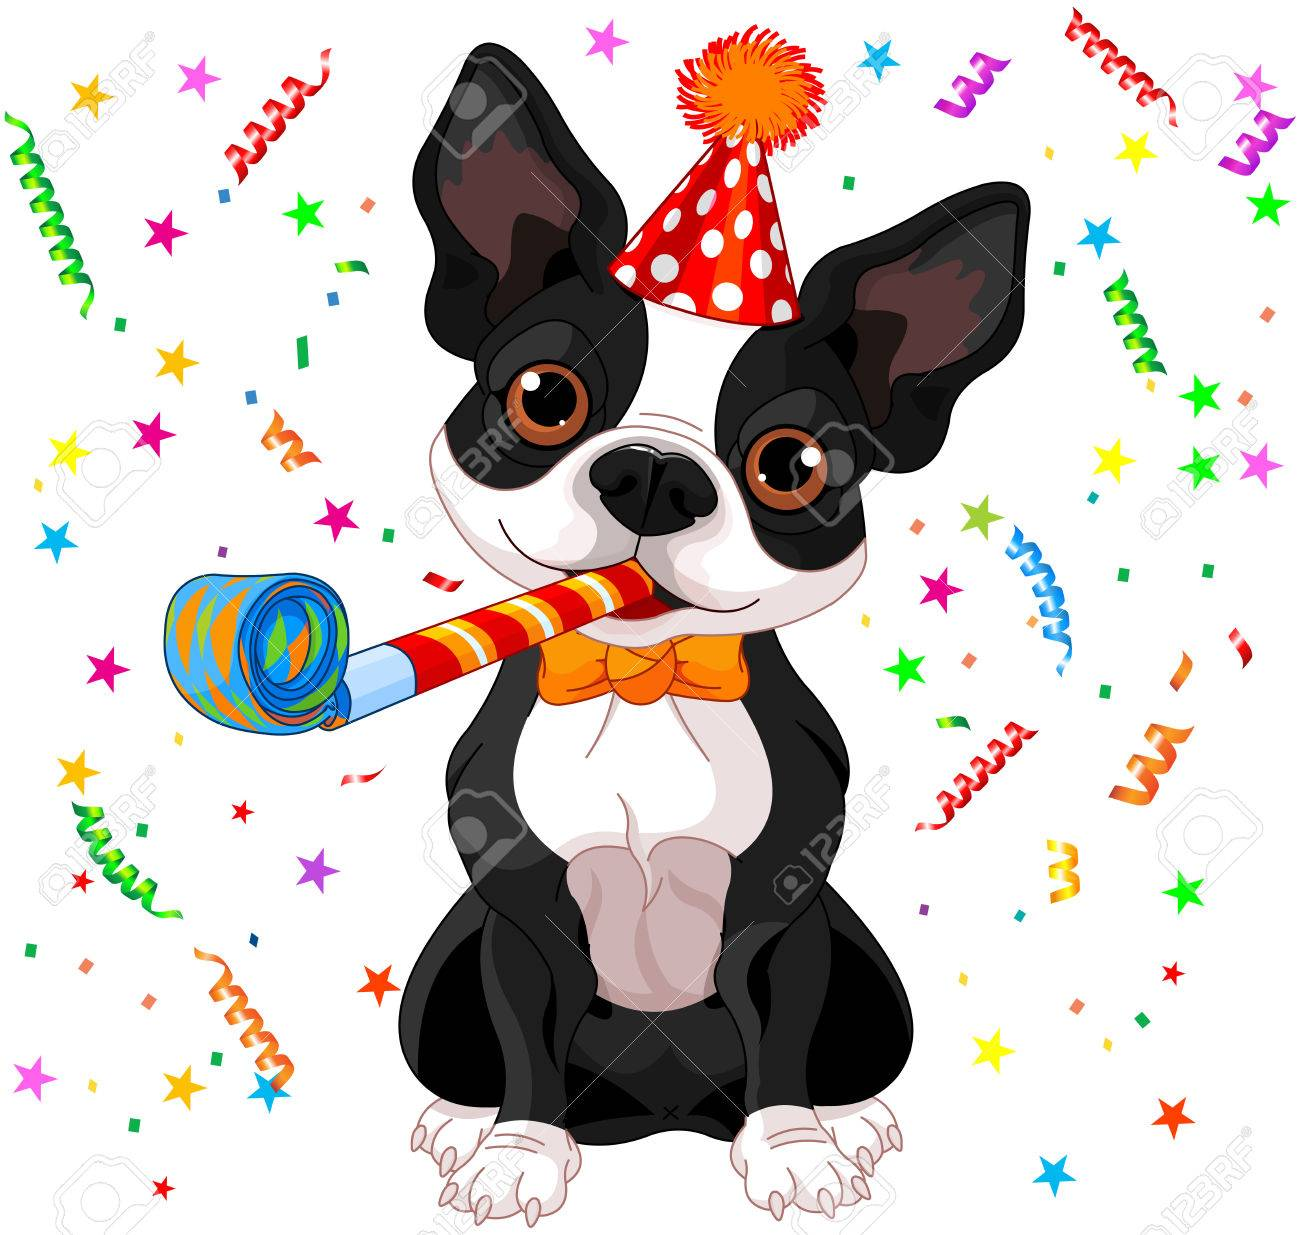 /!\ Règles de publication d'une annonce pour adoption /!\ 35588778-illustration-of-cute-boston-terrier-celebrating